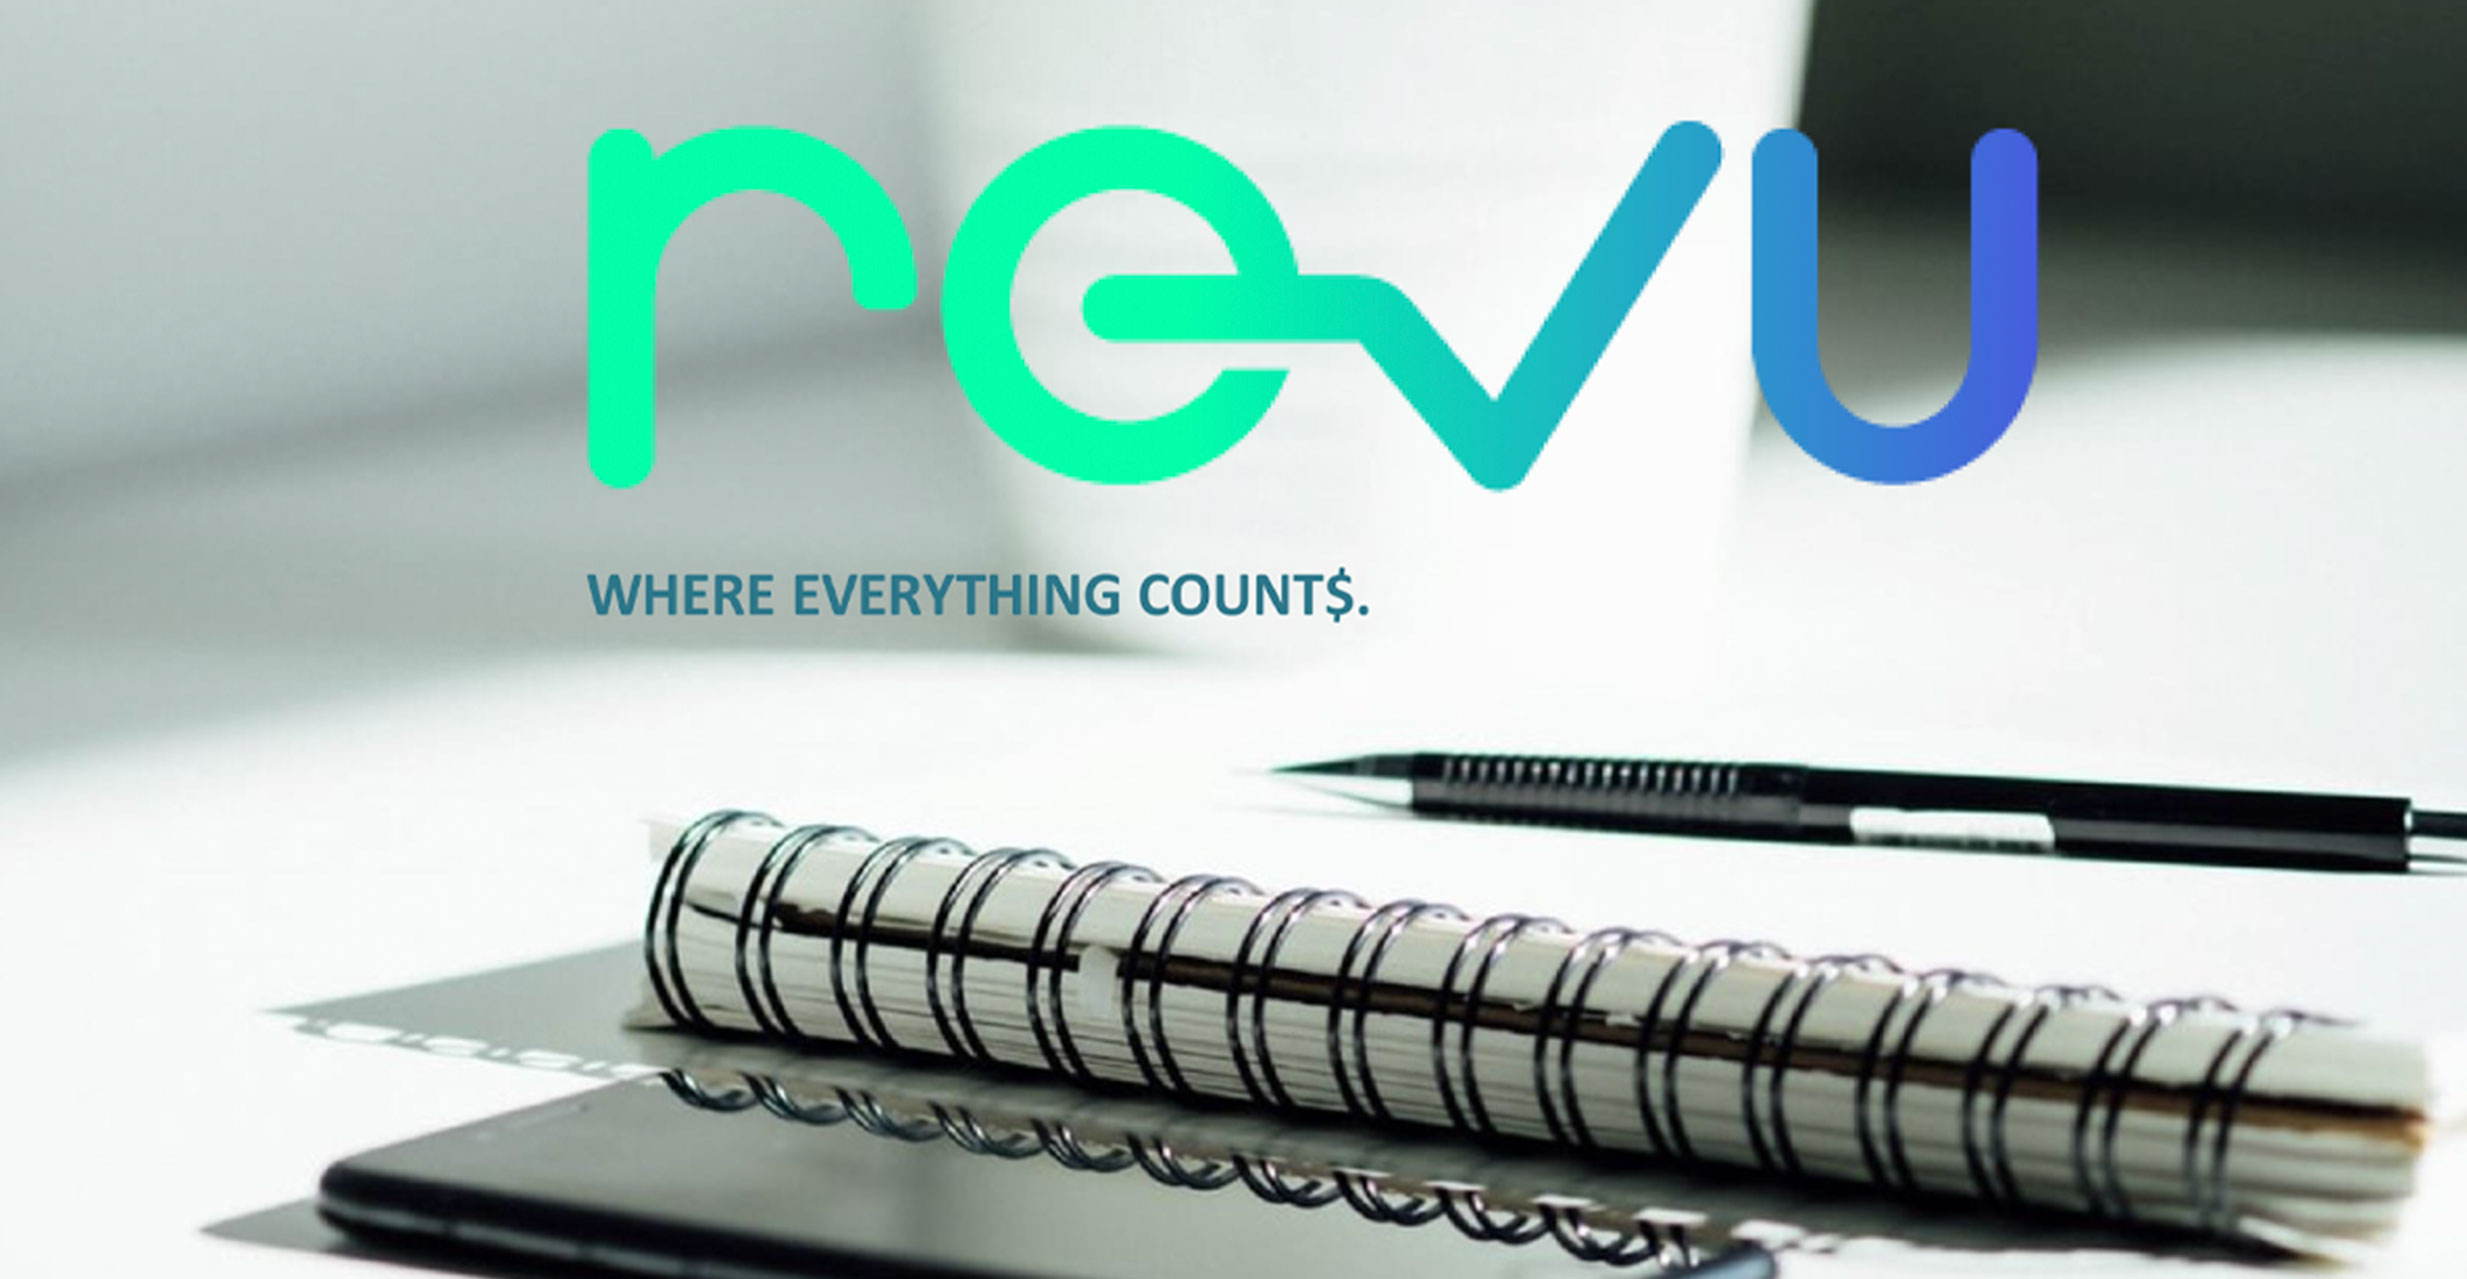 RevuBooks Accounting Services image